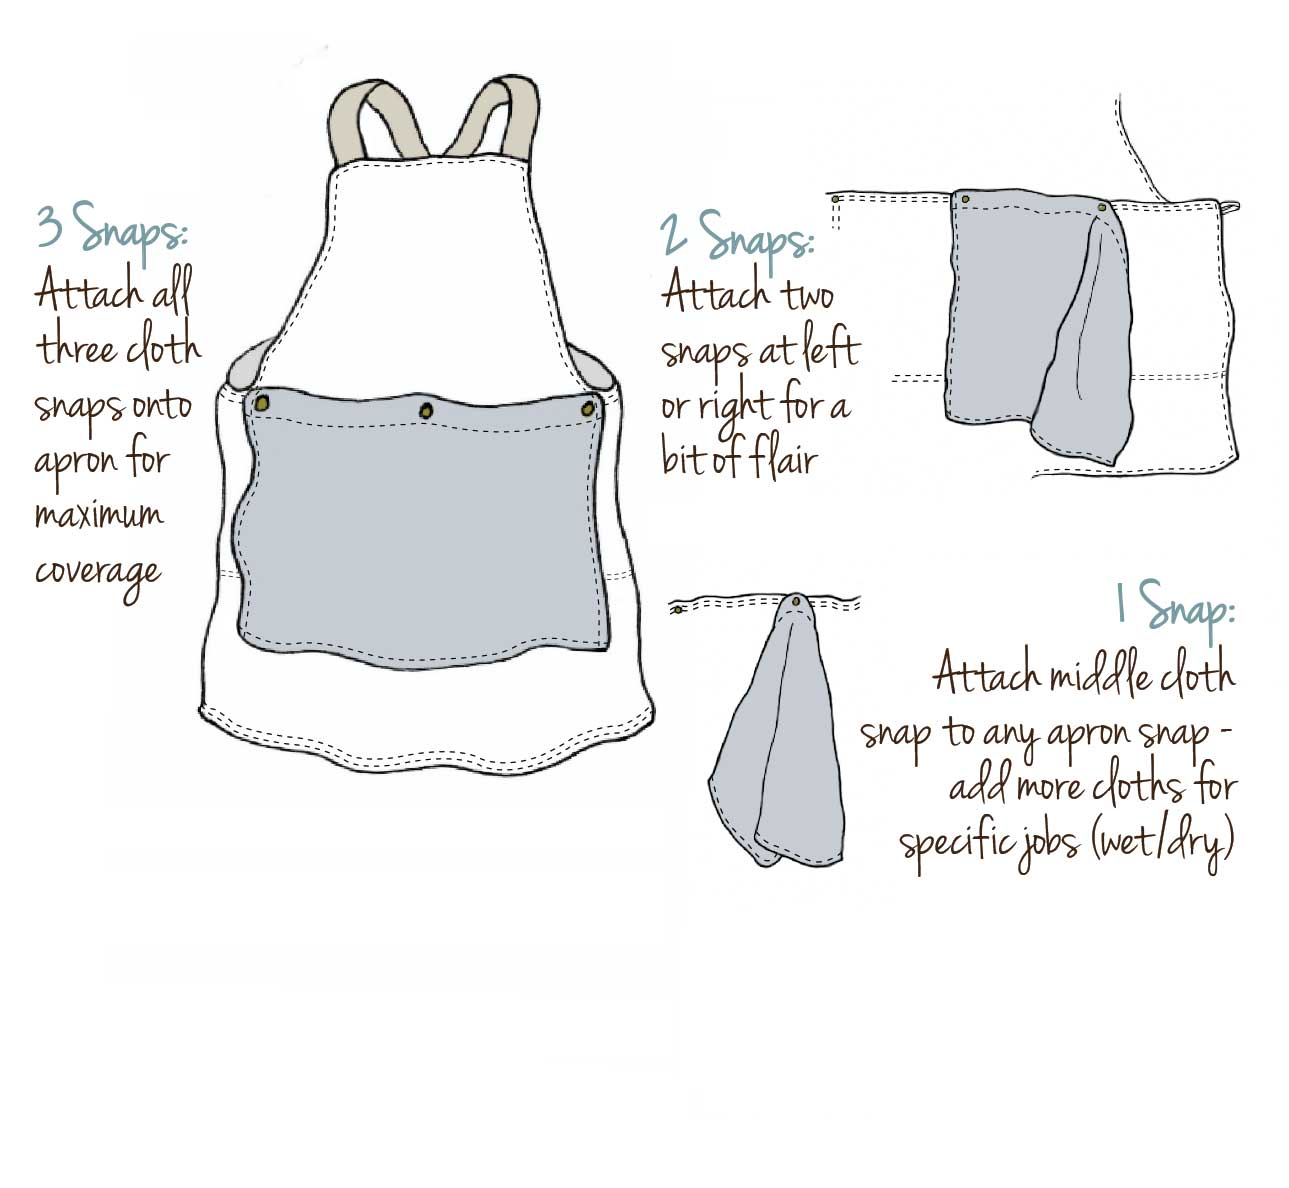 snap-cloth-attach-drawing-for-product-page4.jpg